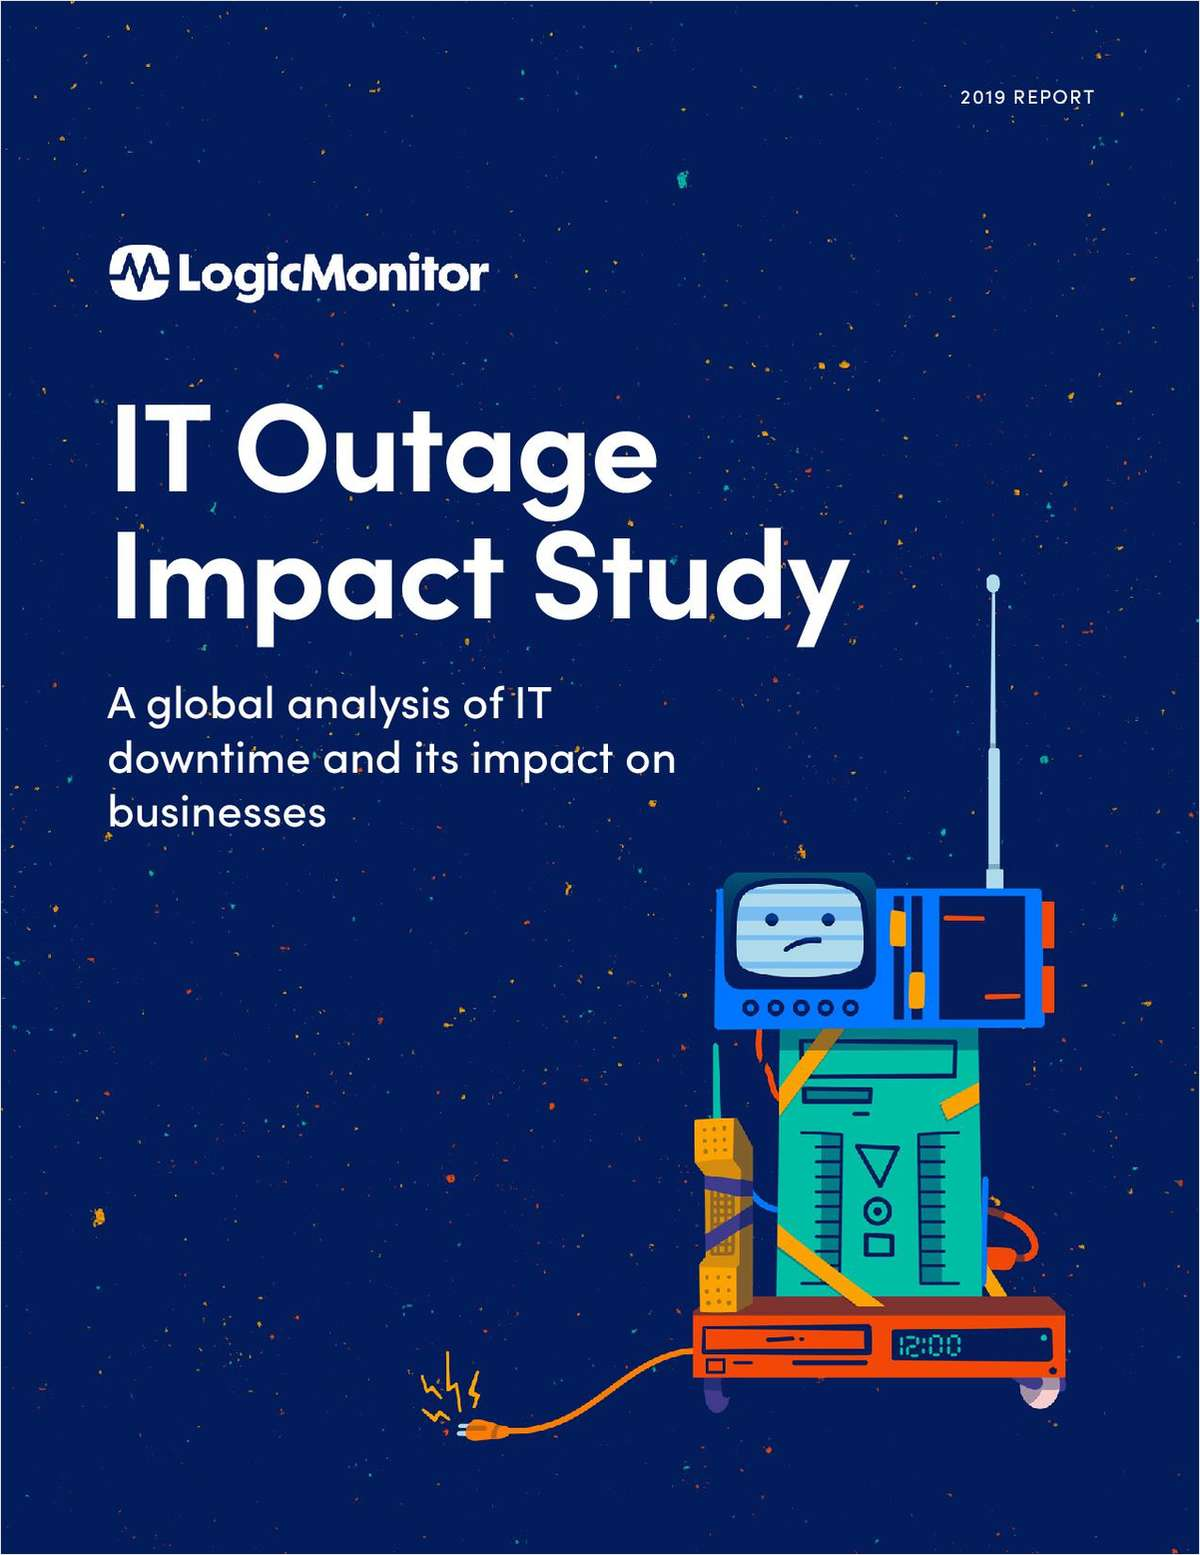 Global IT Outage Impact Study